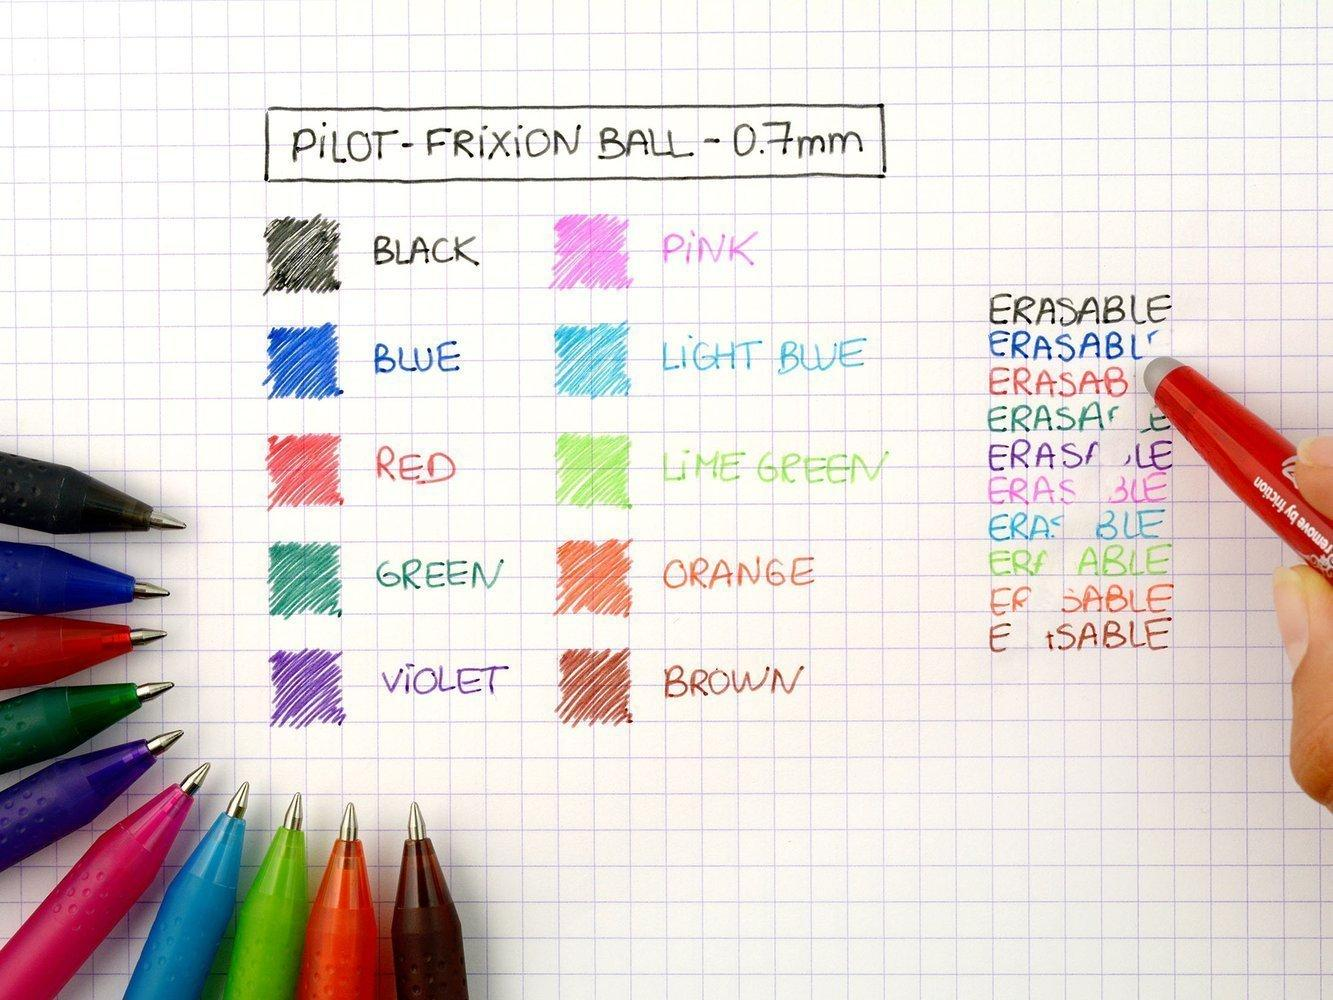 PILOT FRIXION BALL - GEL INK ROLLER - BLUE - MEDIUM TIP (0.7MM)